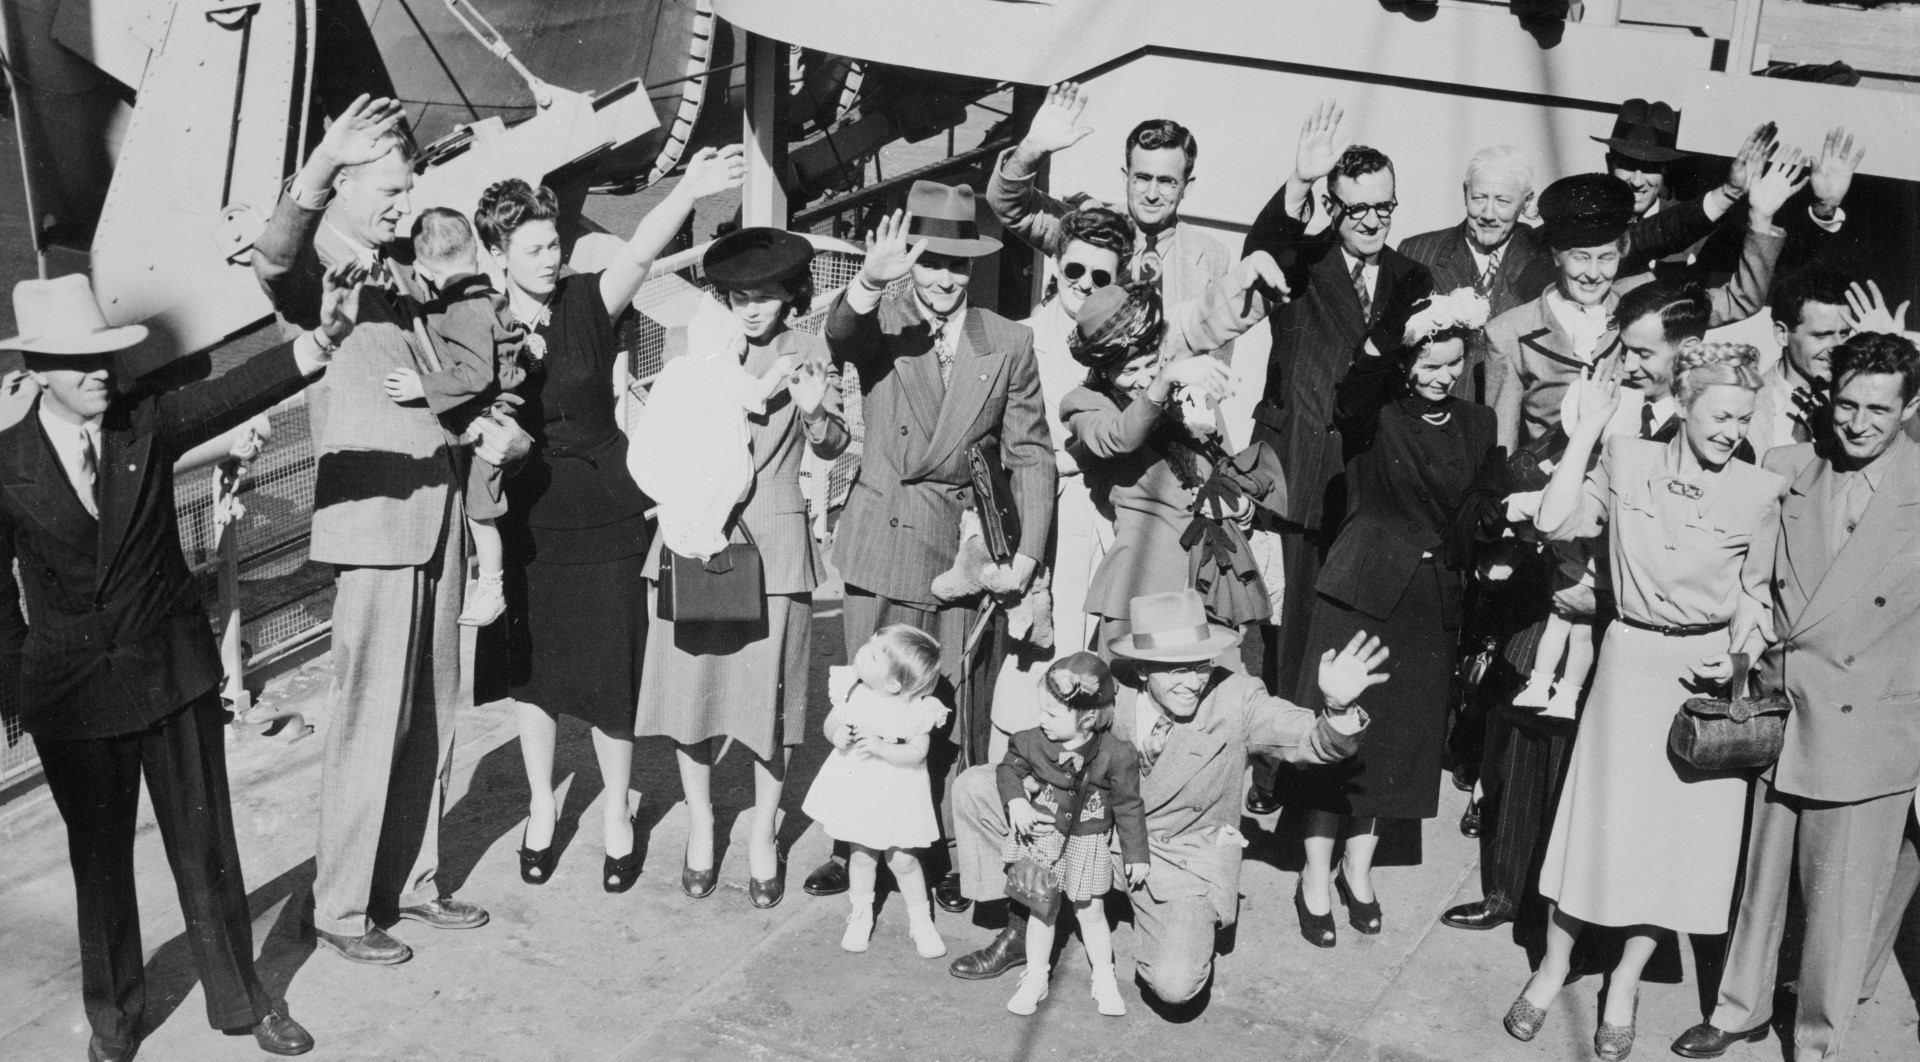 Families standing on a dock, smiling and waving.